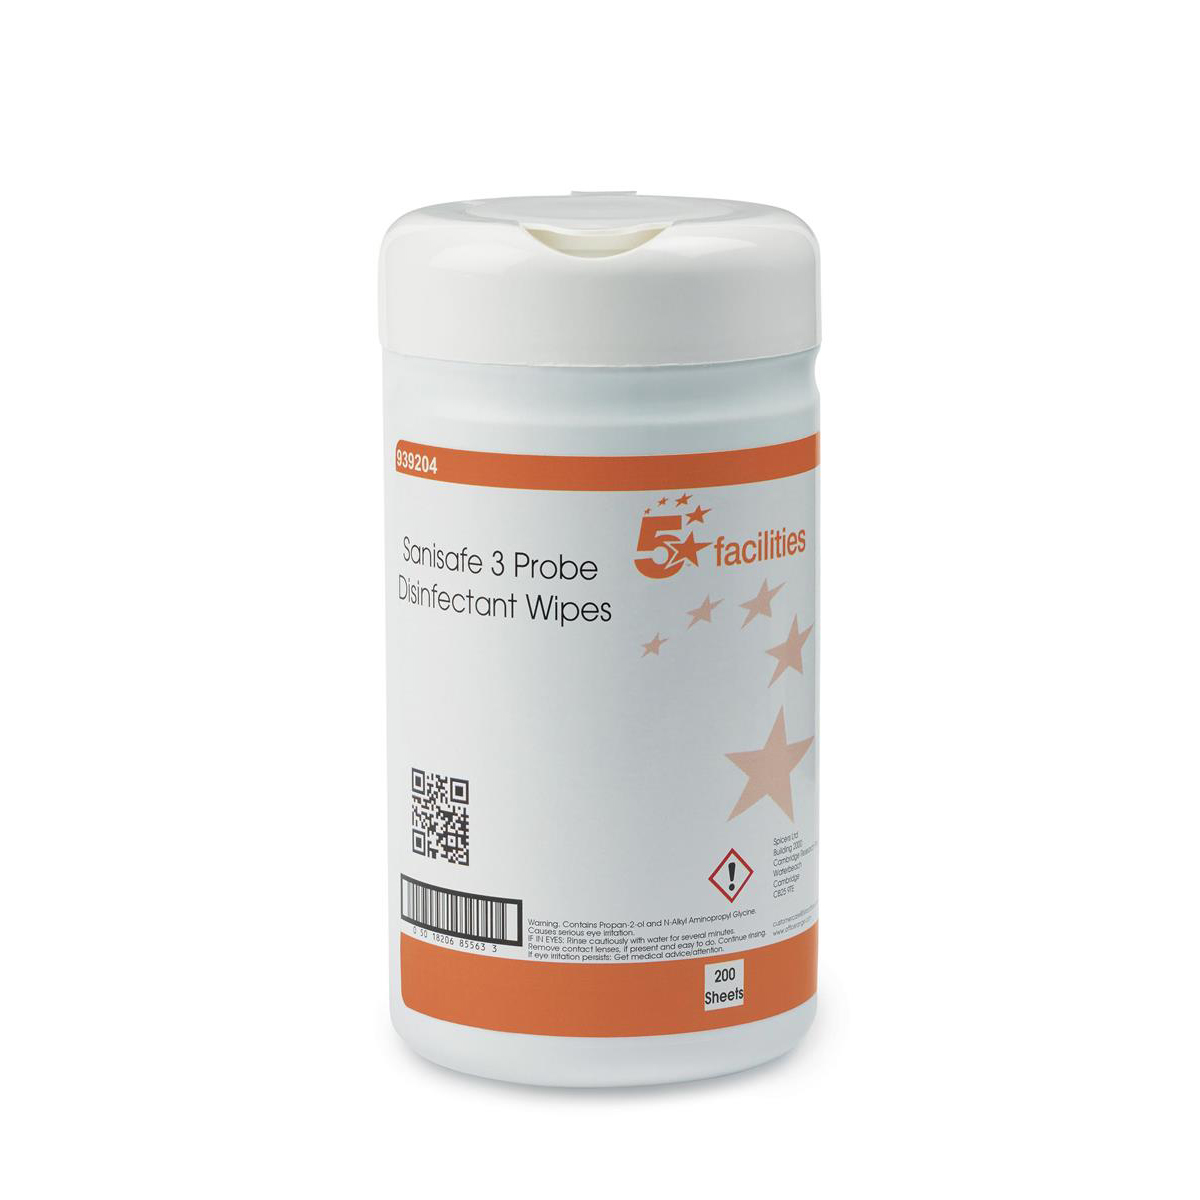 5 Star Facilities Probe Disinfectant Wipes Anti-bac PHMB-free BPR Low-residue 13x13cm Tub 200 Sheets